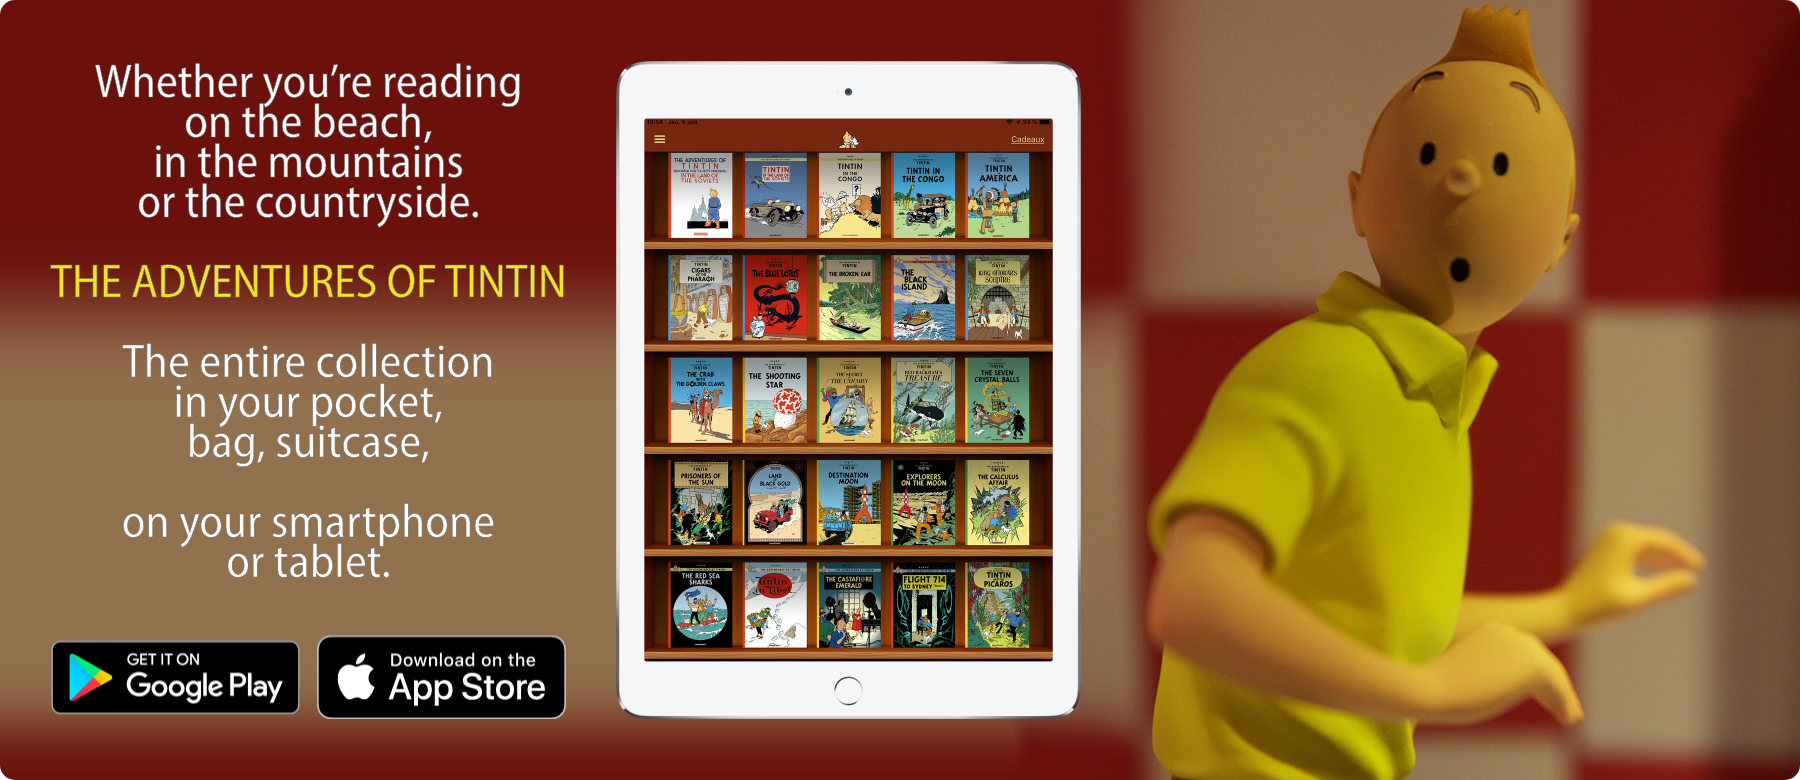 Tintin - Official web site